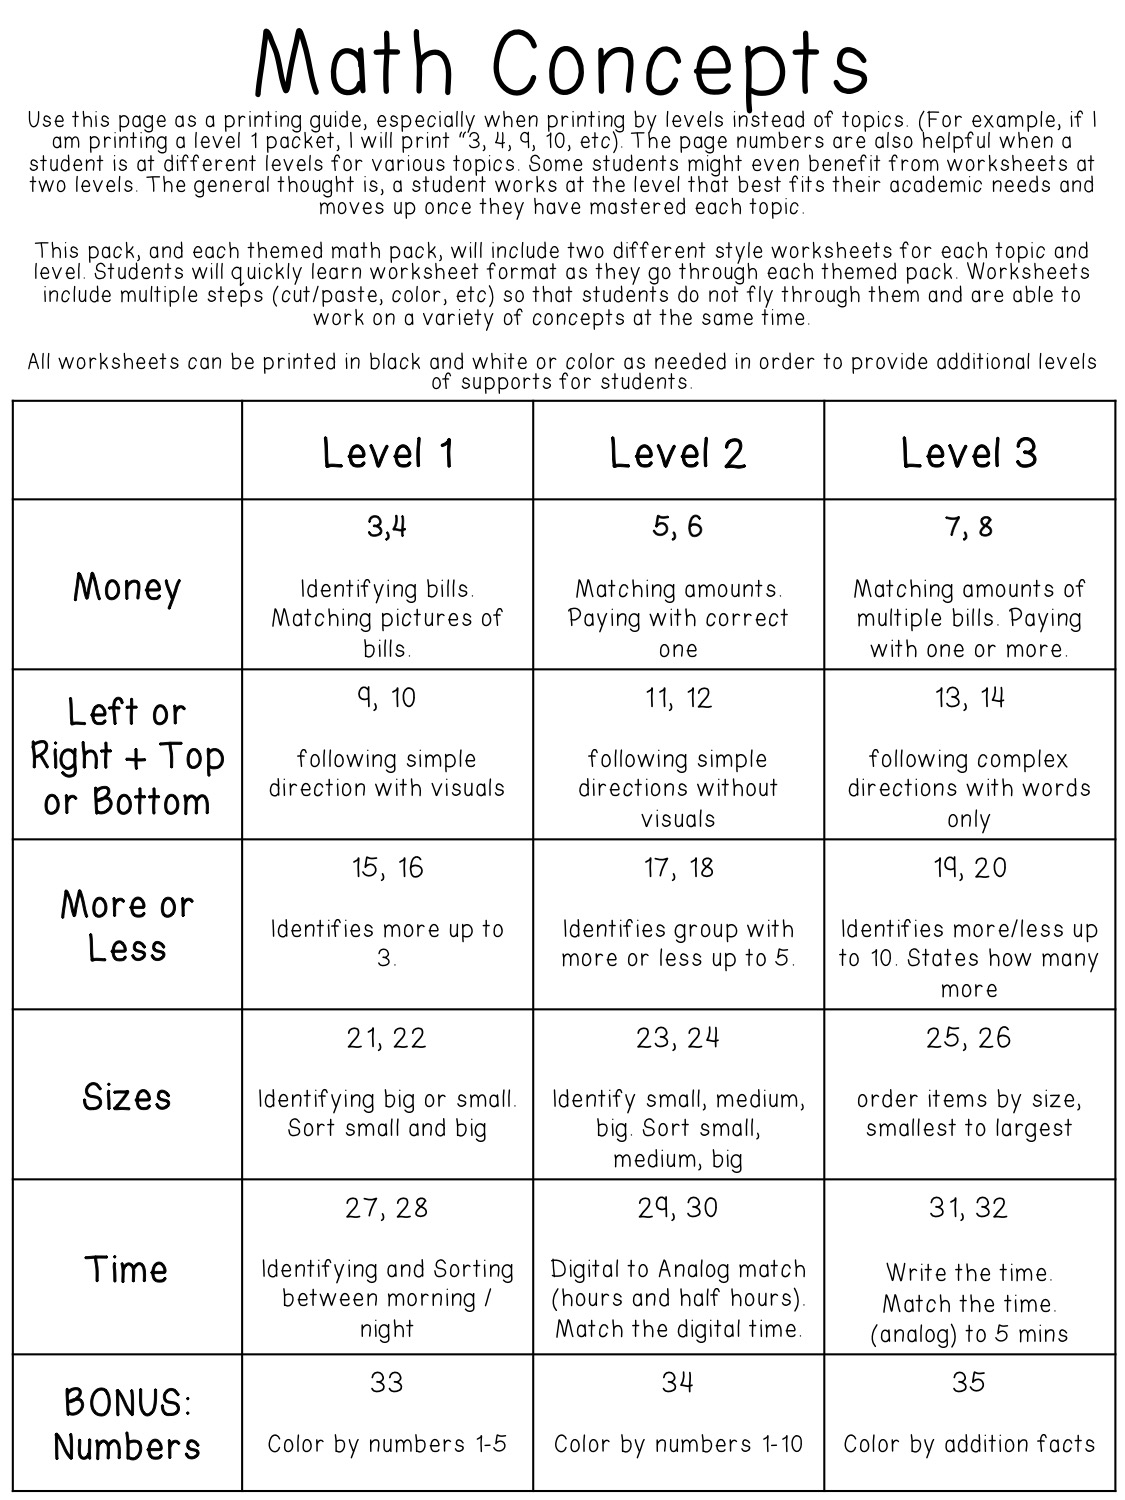 Worksheets Life Skills Math Worksheets math life skill worksheets thanksgiving themed breezy special ed in my classroom we do a worksheet each day and then activity that corresponds to so are getting h